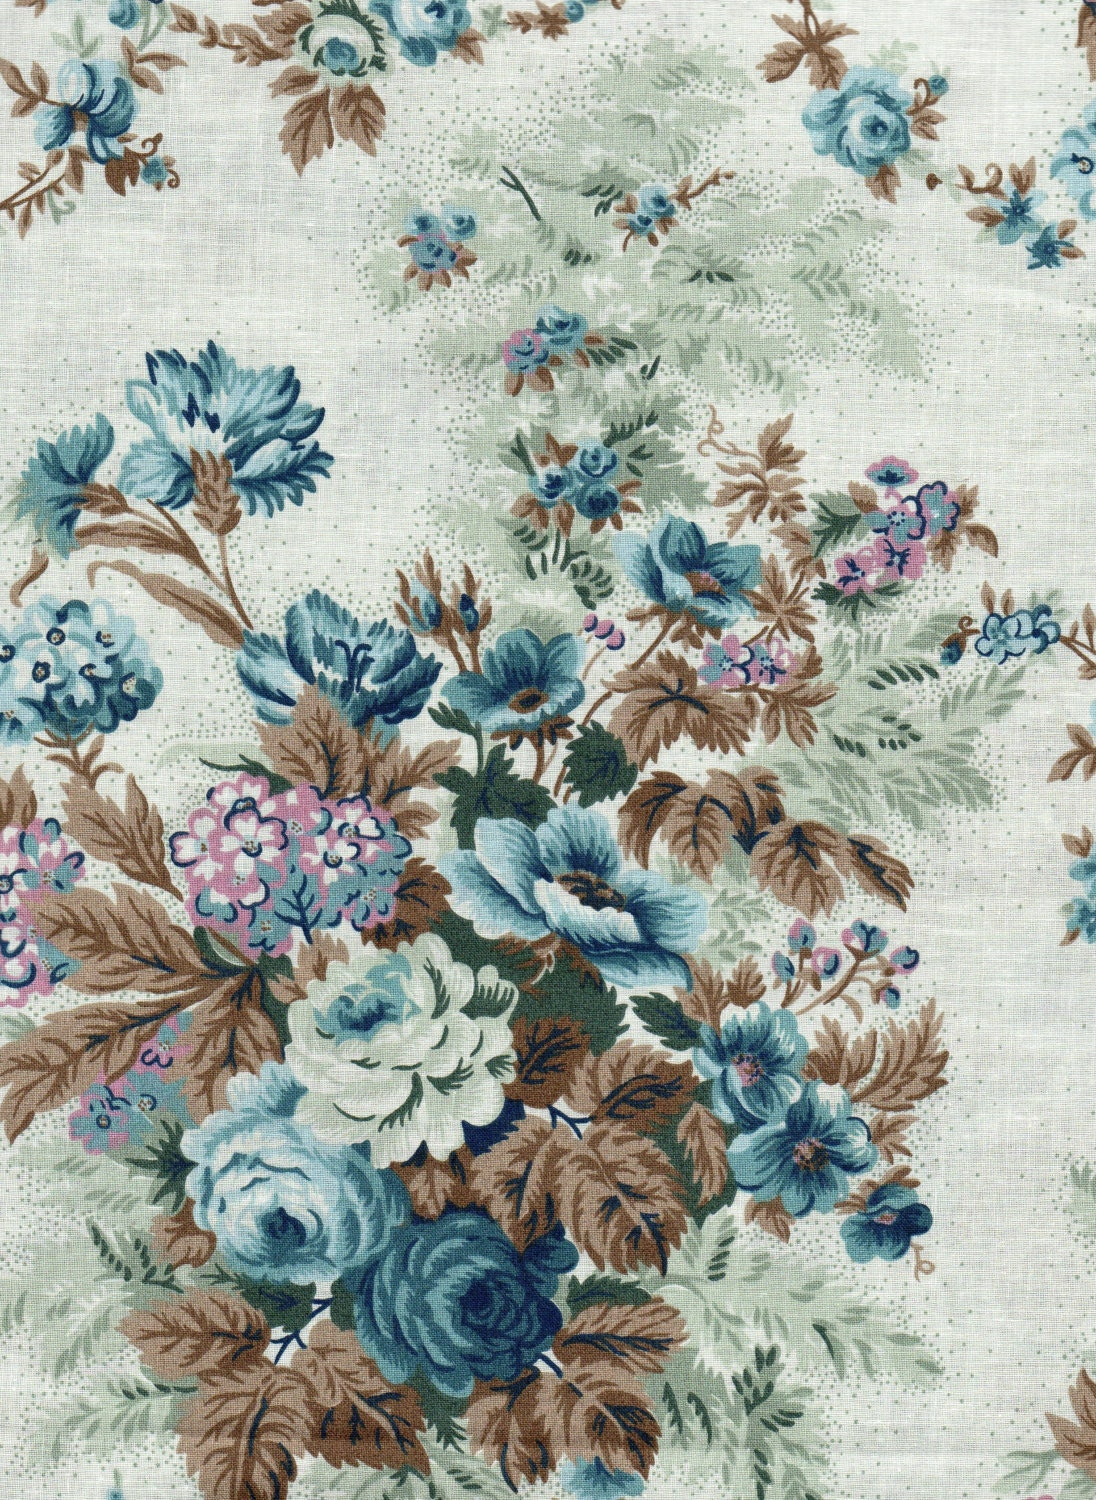 Vintage Floral Quilt Fabric Blue Flowers On Blue